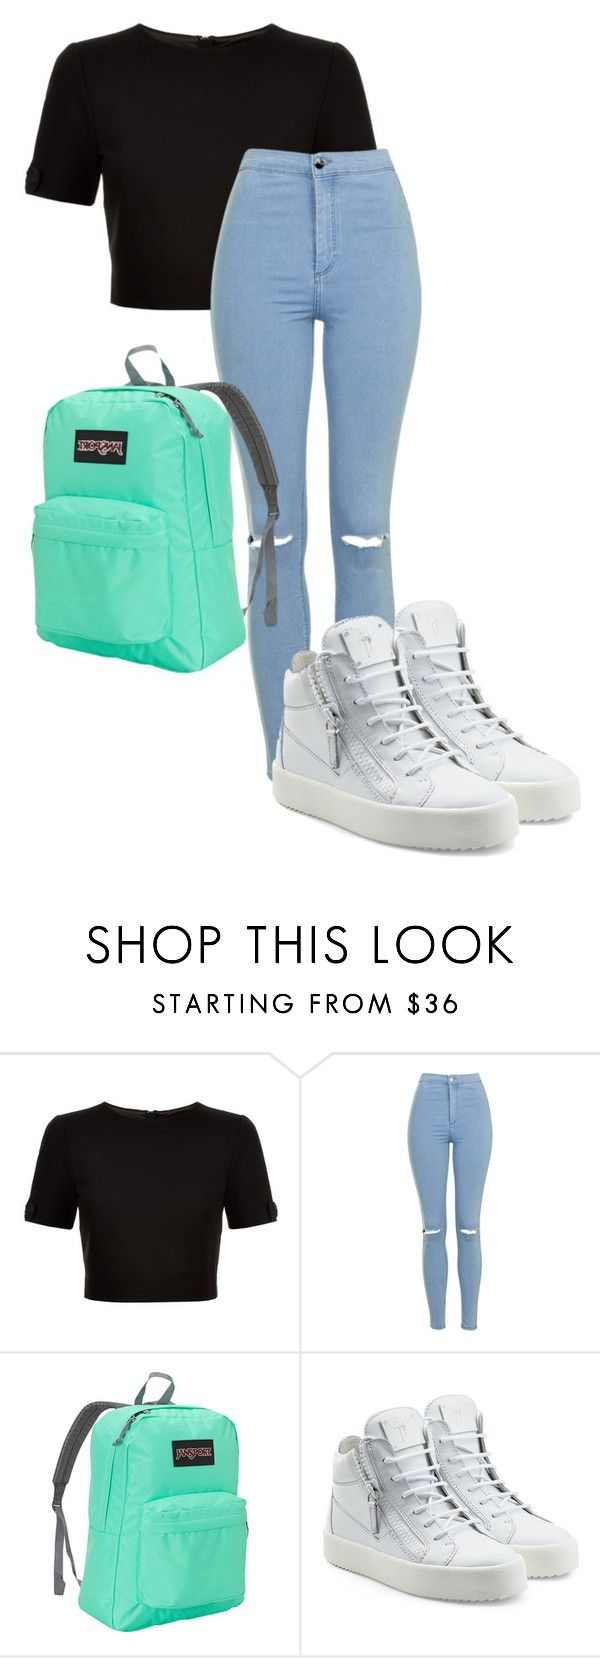 """""""Untitled #430"""" by selena-cage ❤ liked on Polyvore featuring Ted Baker, Topshop, JanSport and Giuseppe Zanotti"""